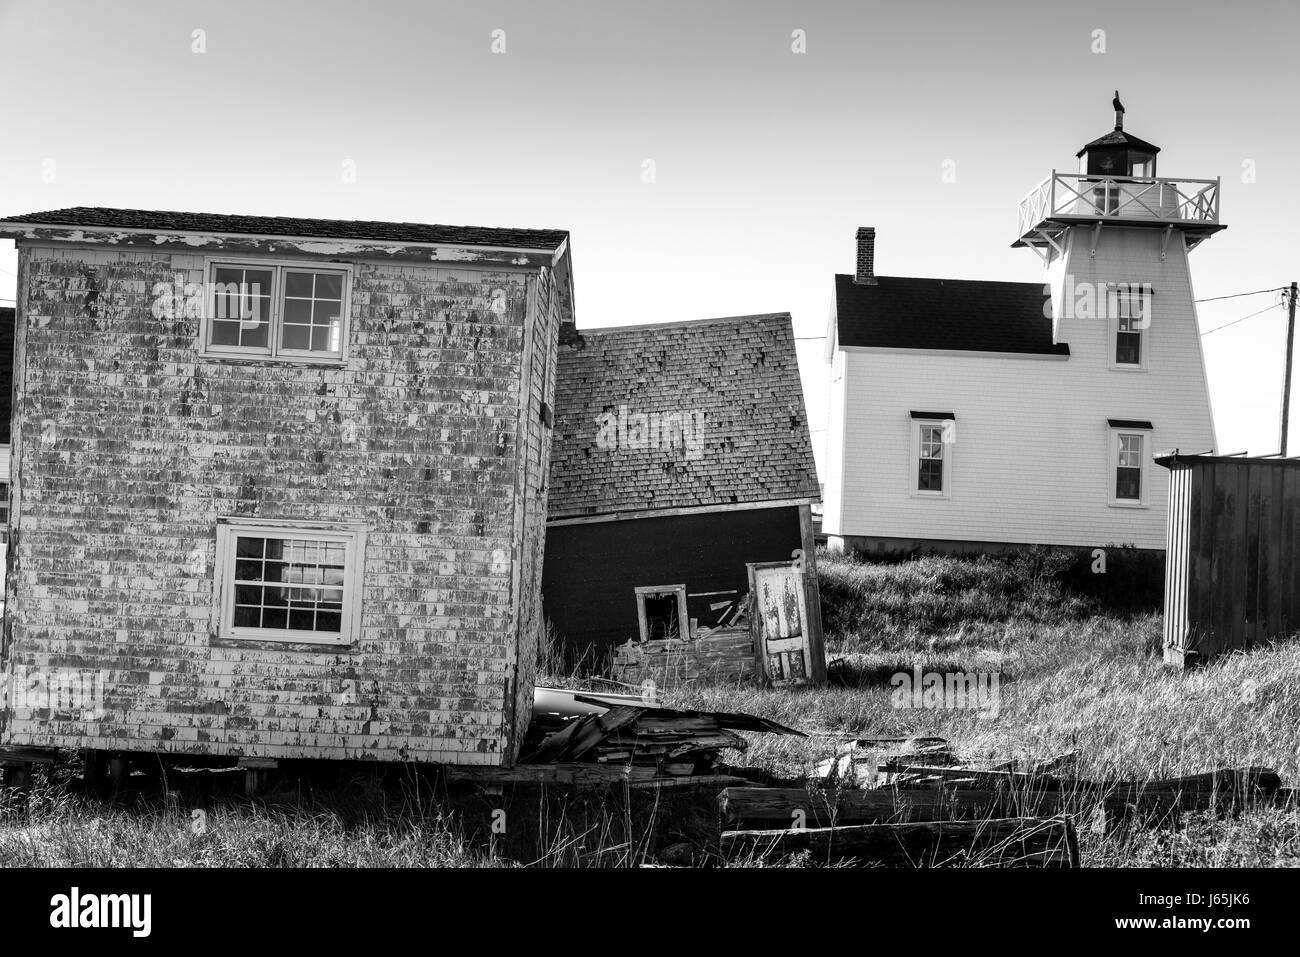 Lighthouse and sheds at harbor, North Rustico, Prince Edward Island, Canada - Stock Image